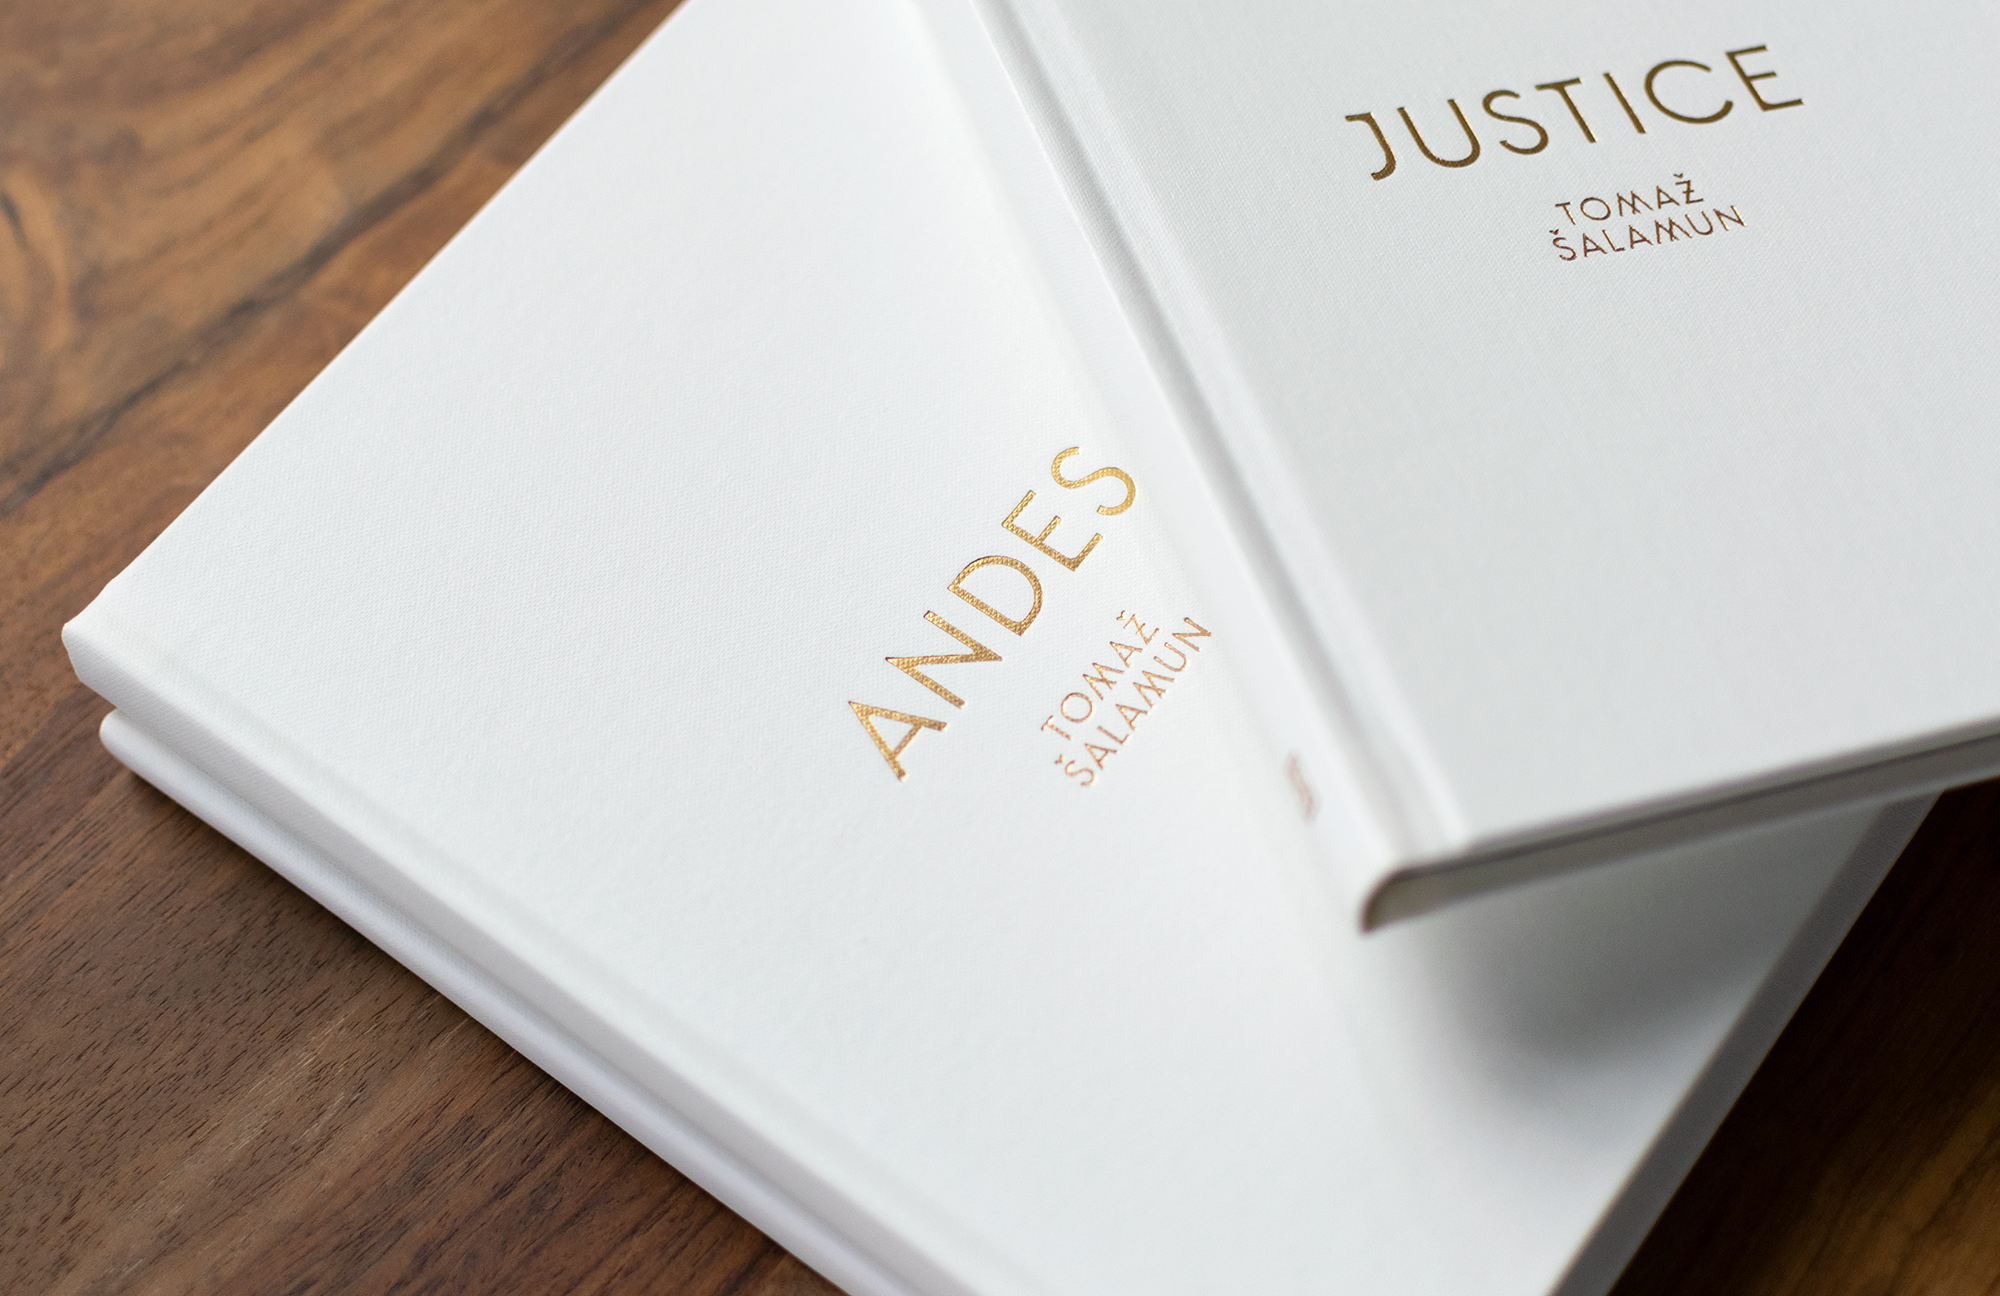 Detail of Andes & Justice by Tomaz Salamun. Gold foil on clothbound book. Custom typography by Abby Haddican Studio.